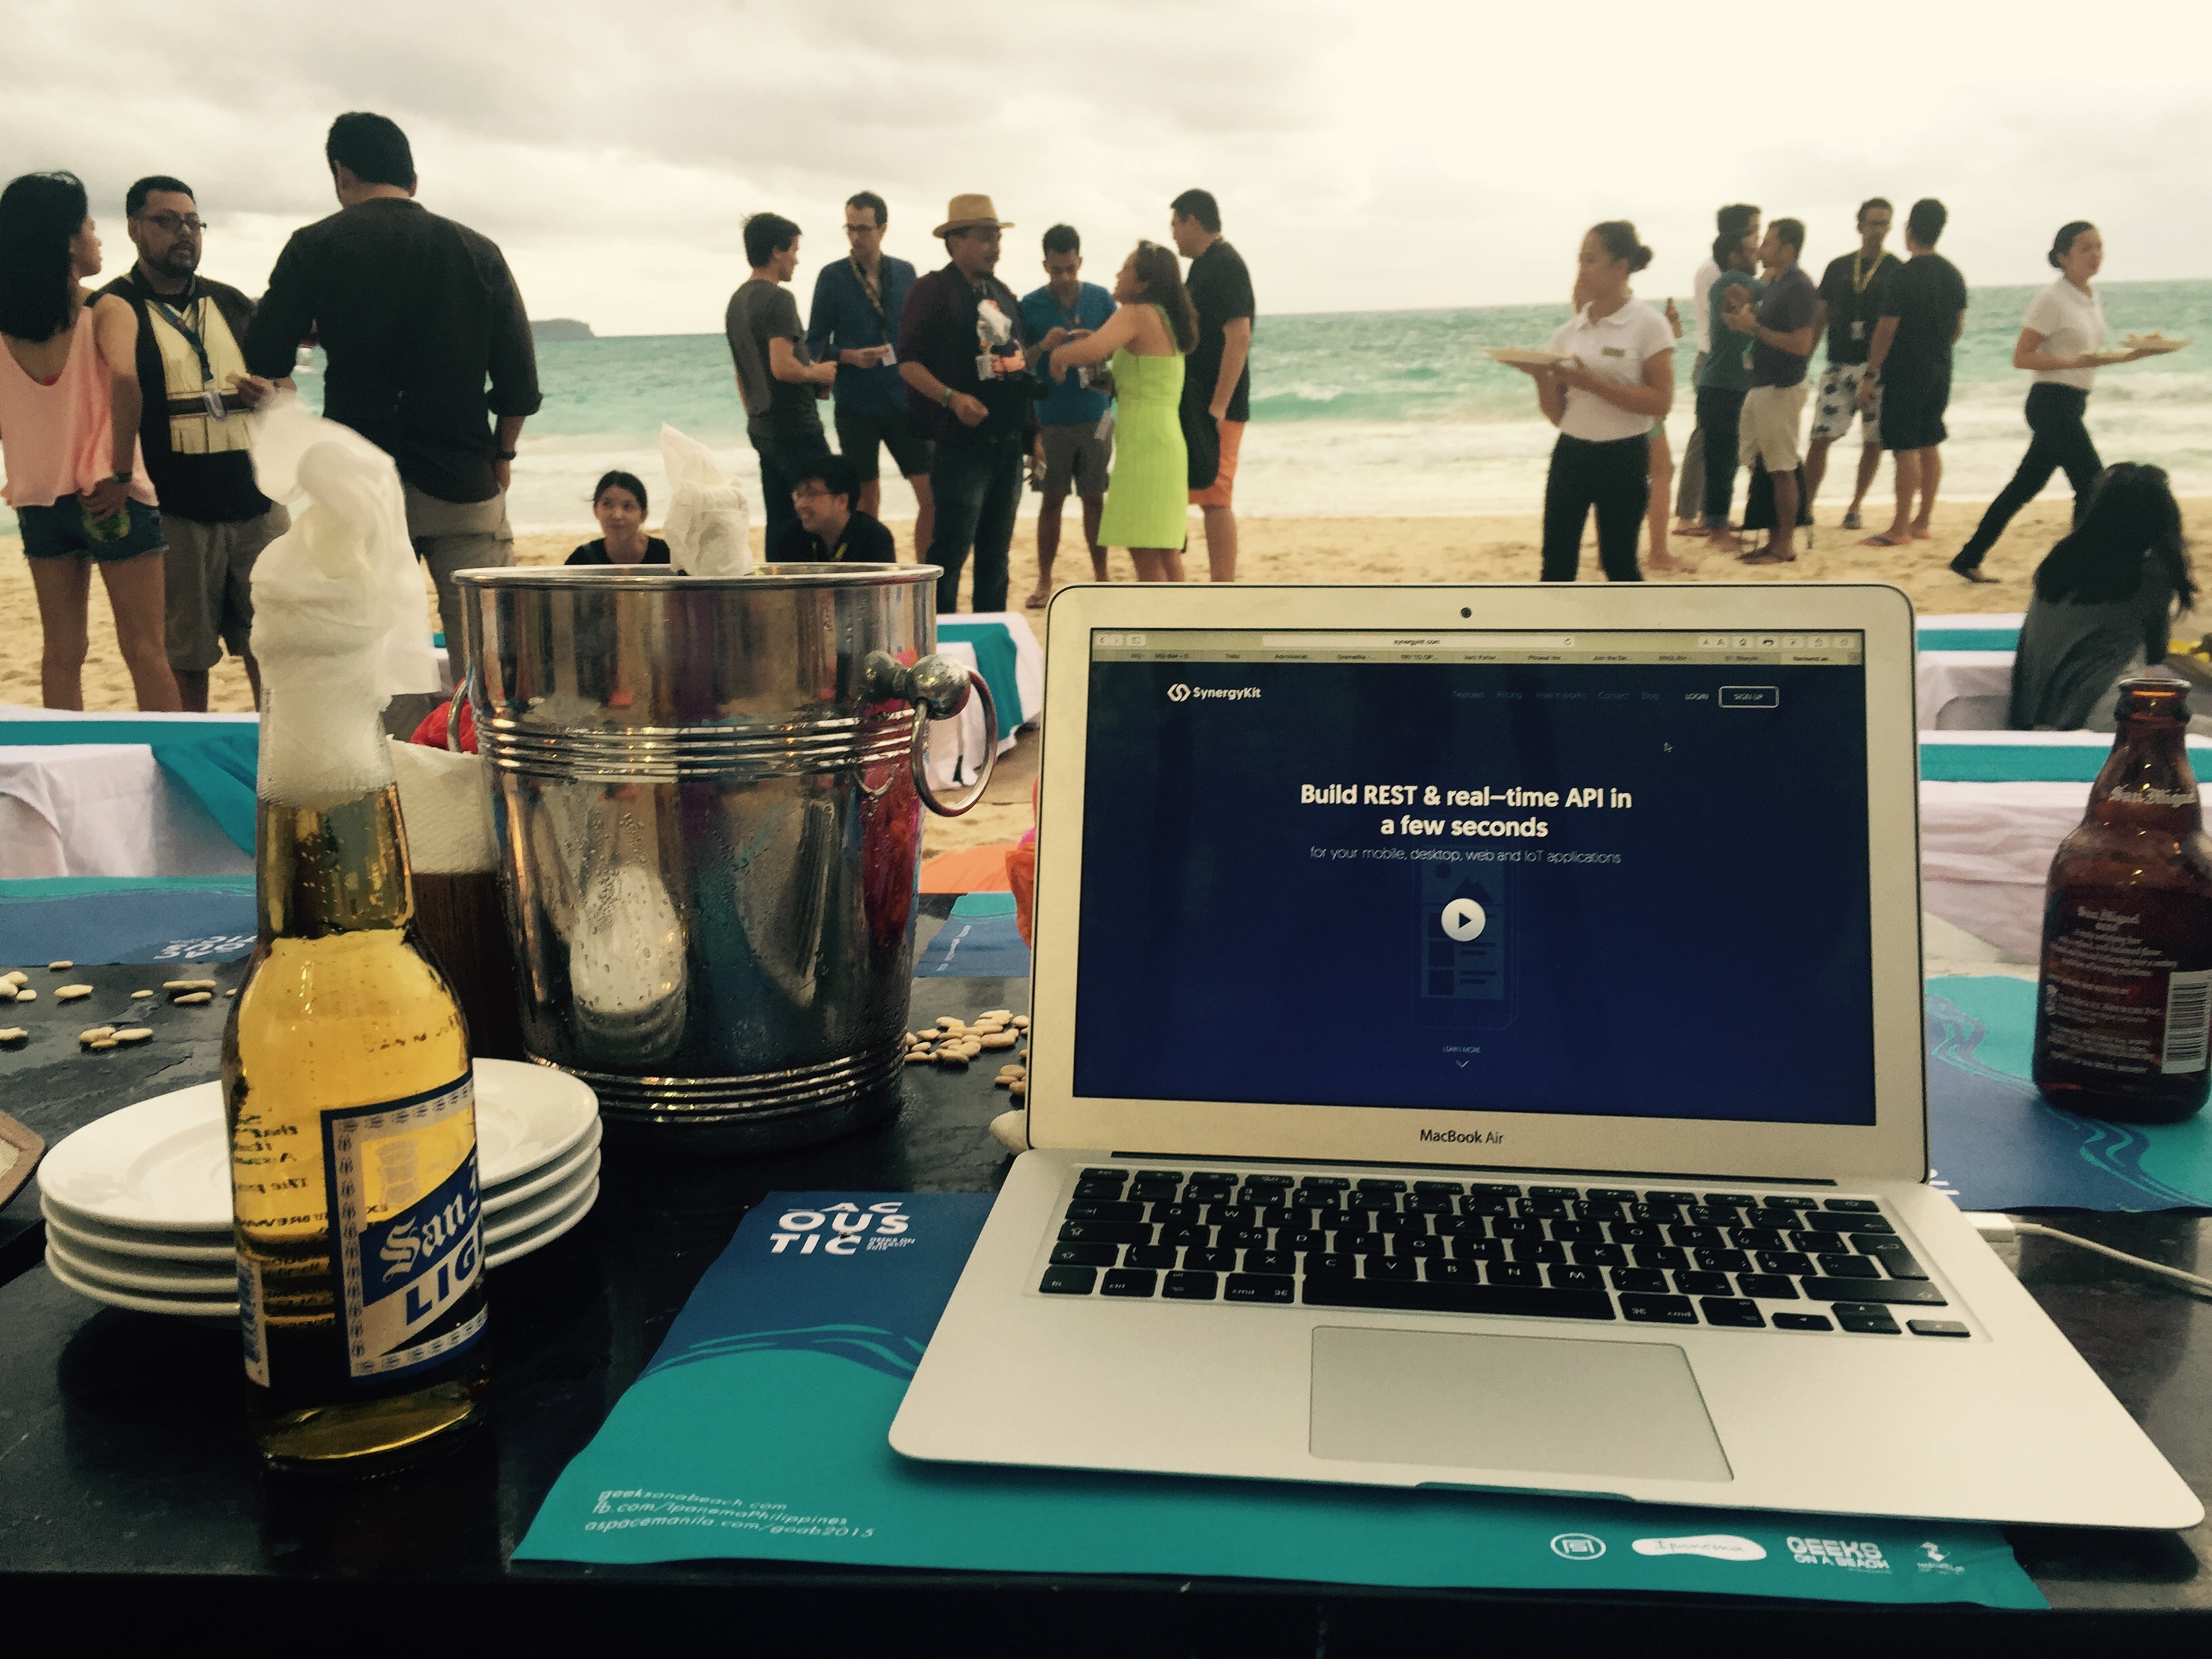 SynergyKit at Geeks On a Beach